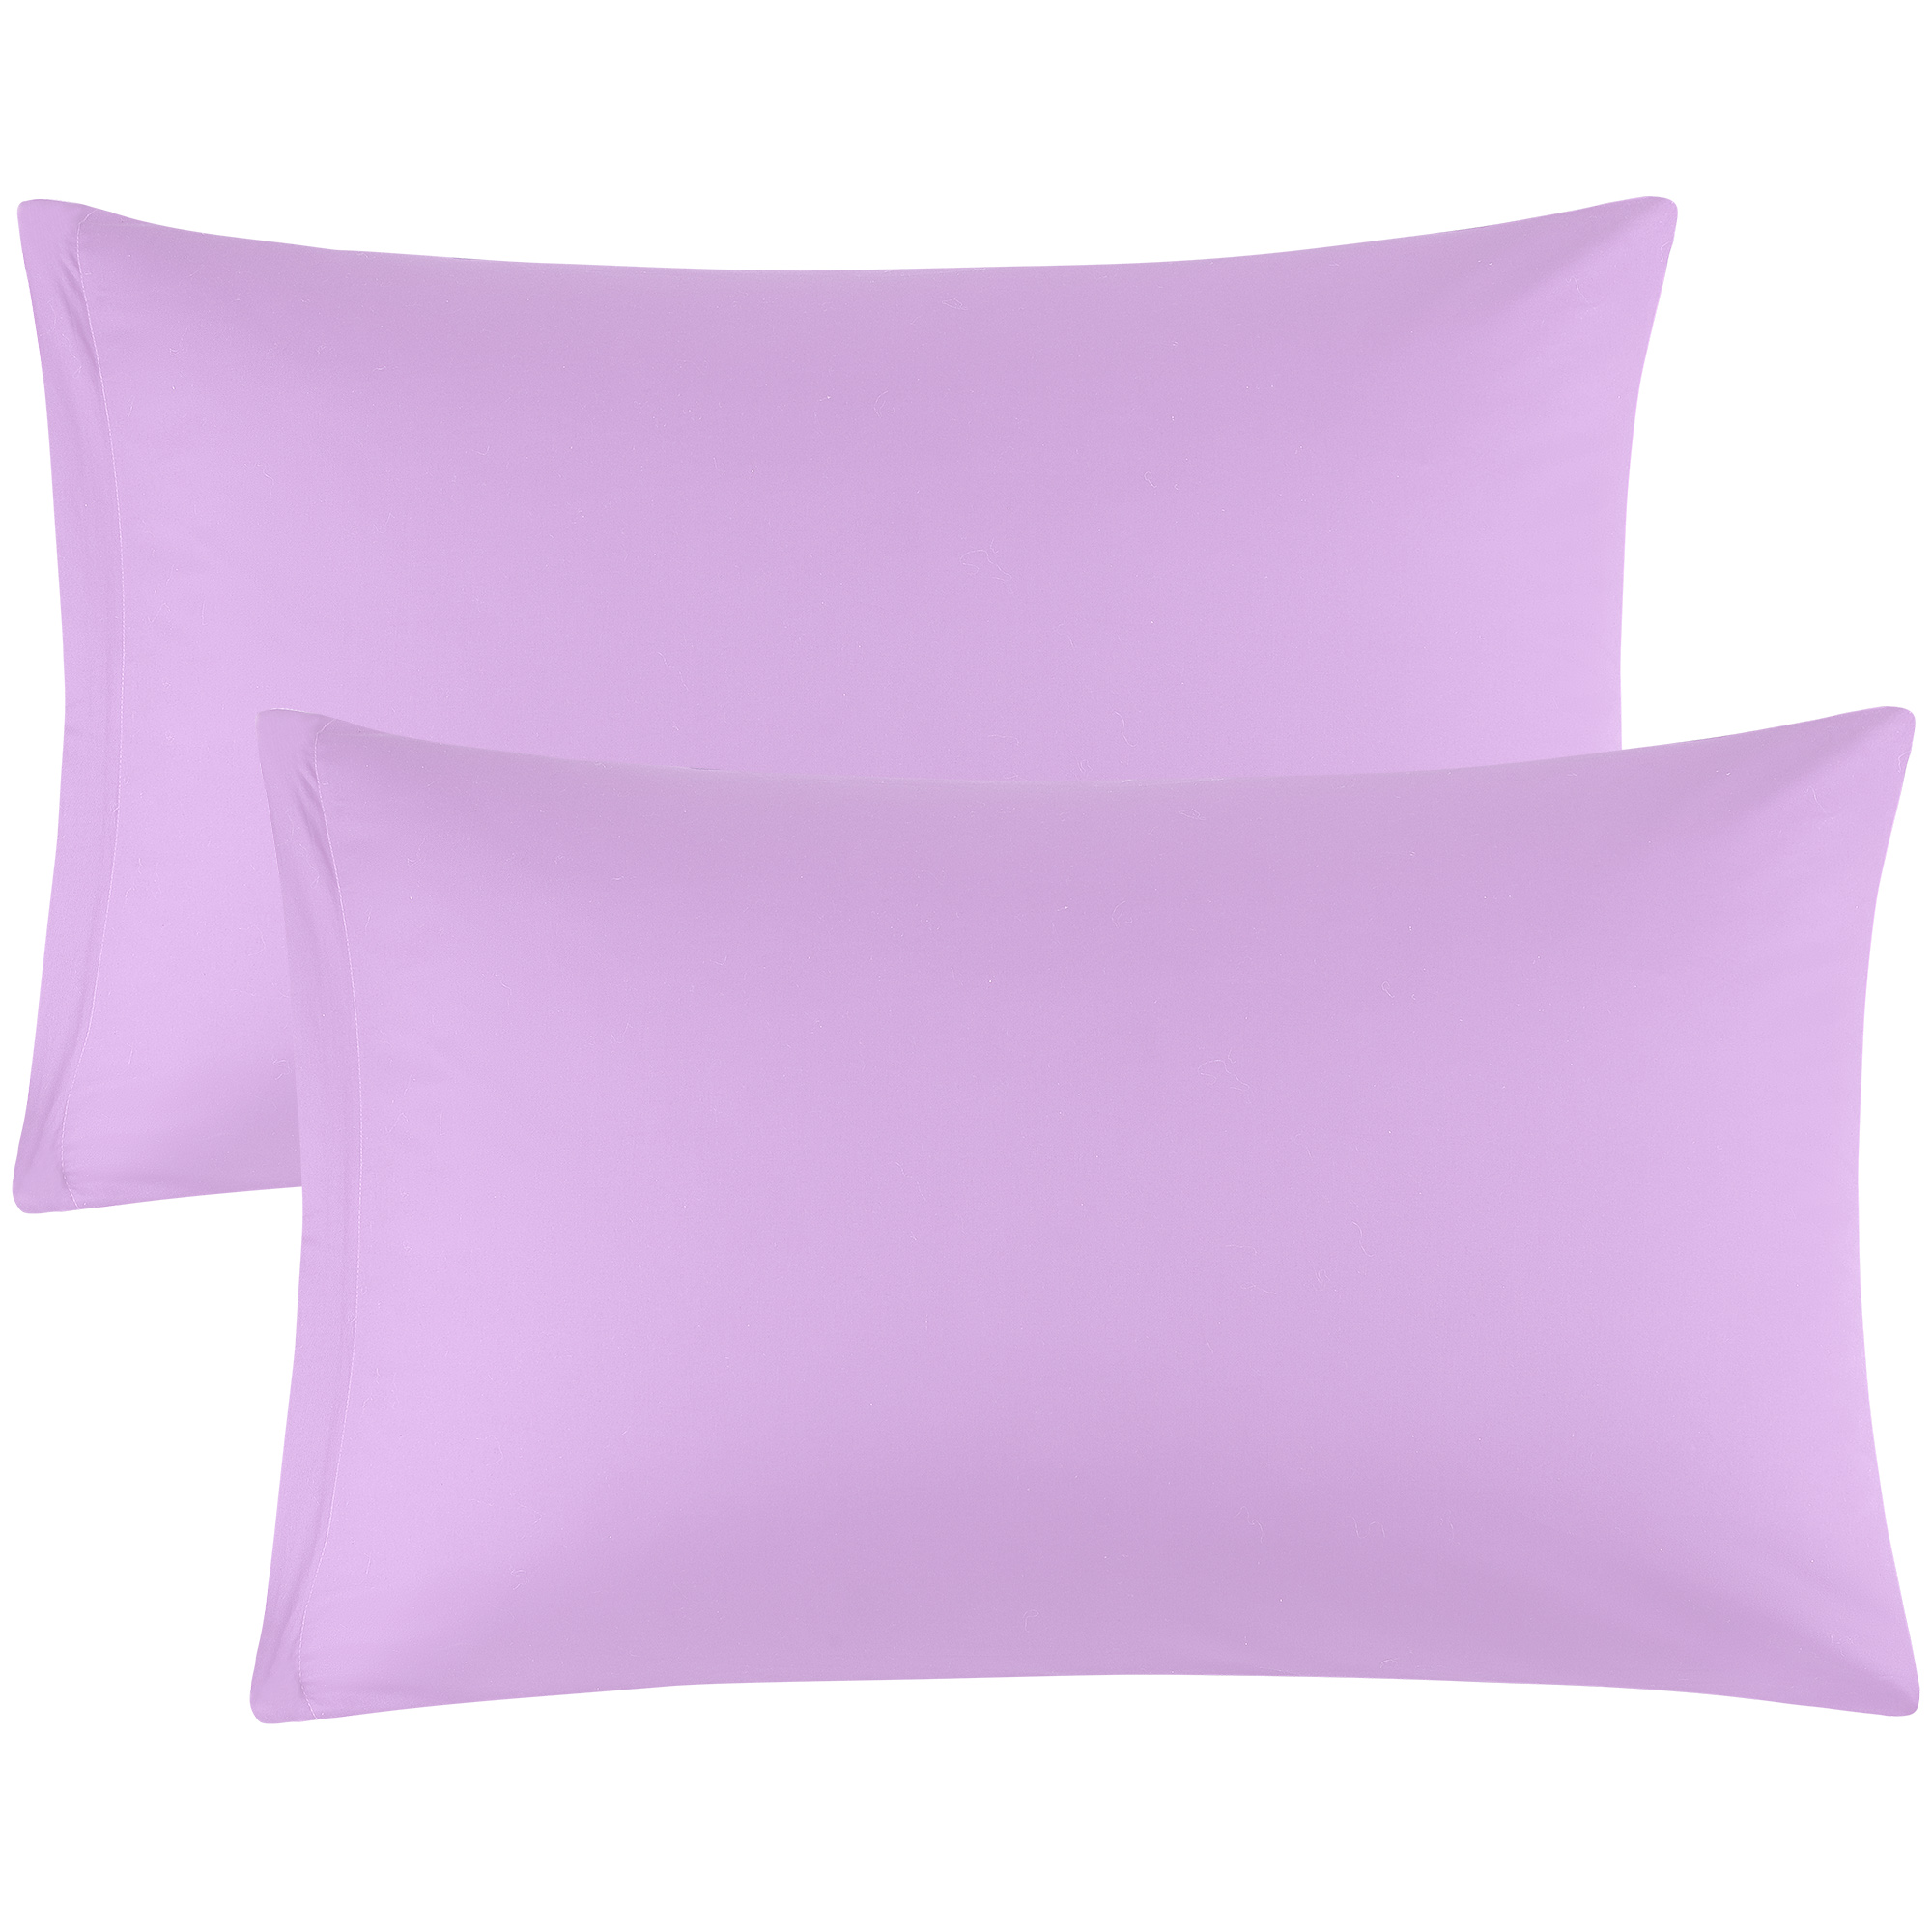 Zippered Pillowcases Covers Egyptian Cotton 2-Pack (20 x 26 Inch, Light Purple)